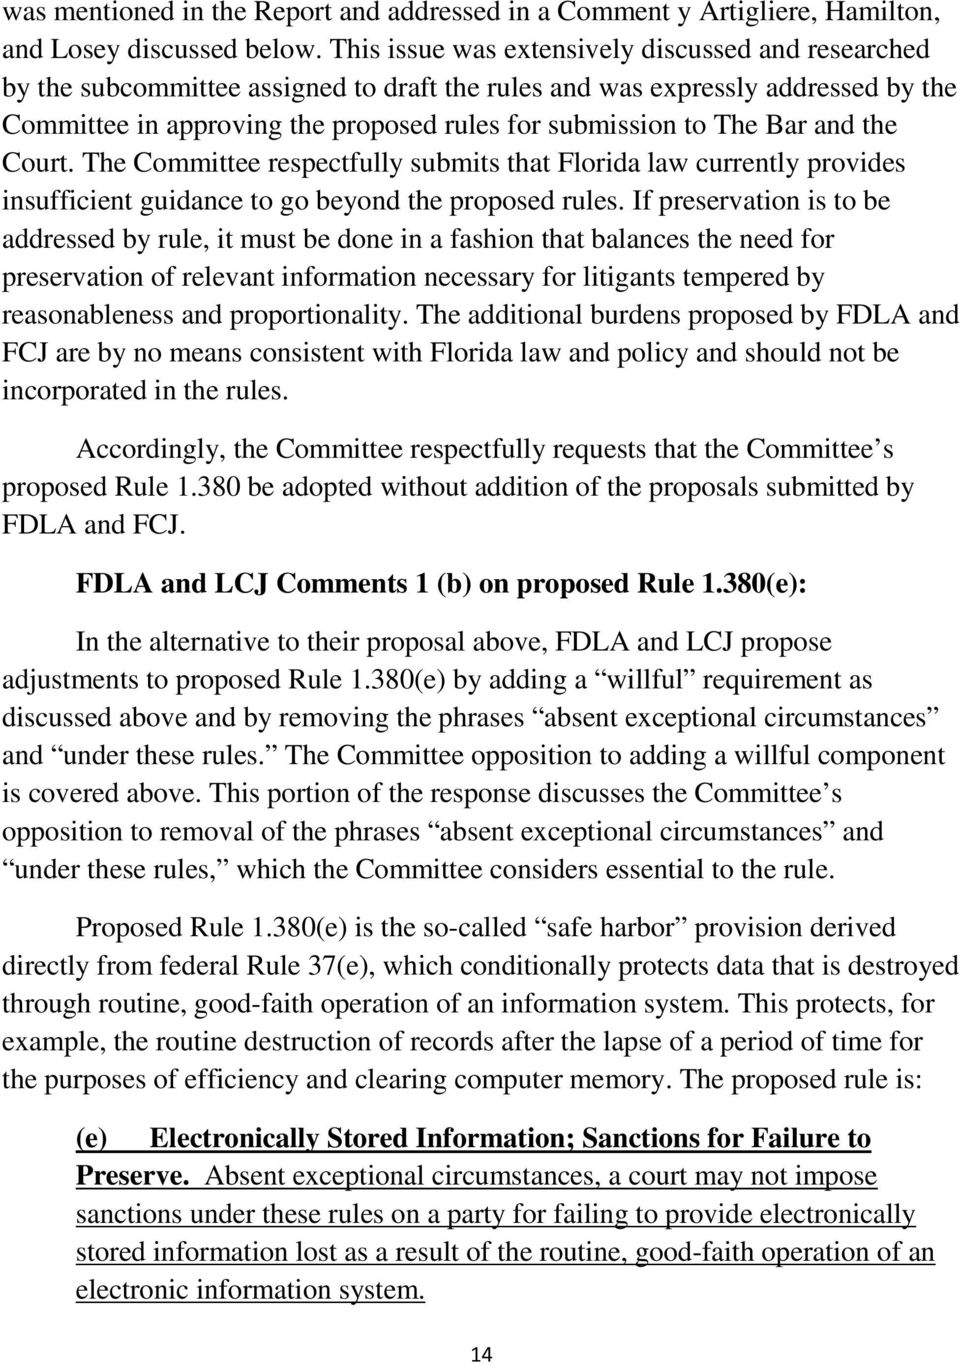 Bar and the Court. The Committee respectfully submits that Florida law currently provides insufficient guidance to go beyond the proposed rules.